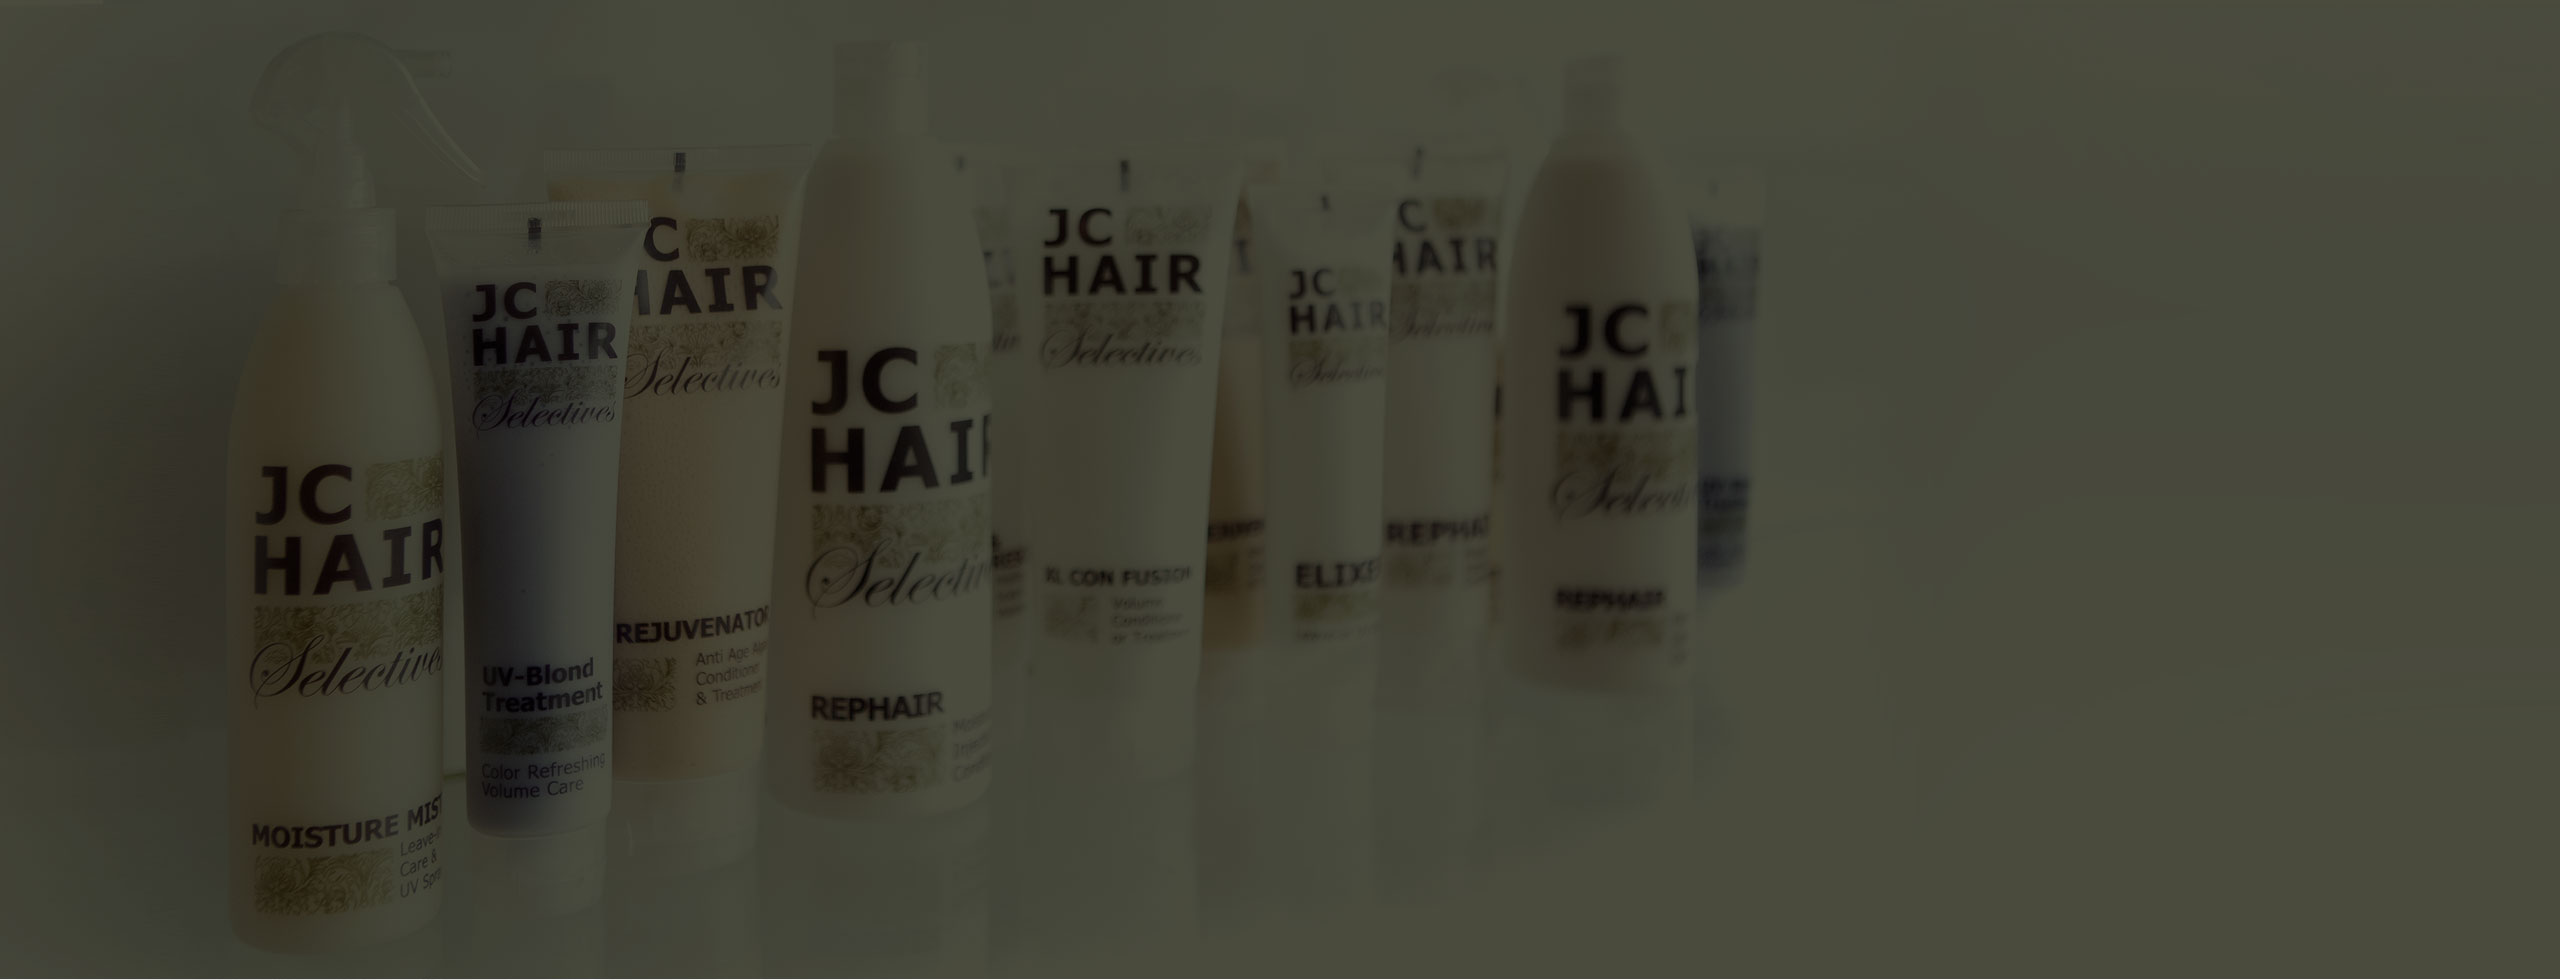 JC Hair & Spa | Treatments & Conditioners